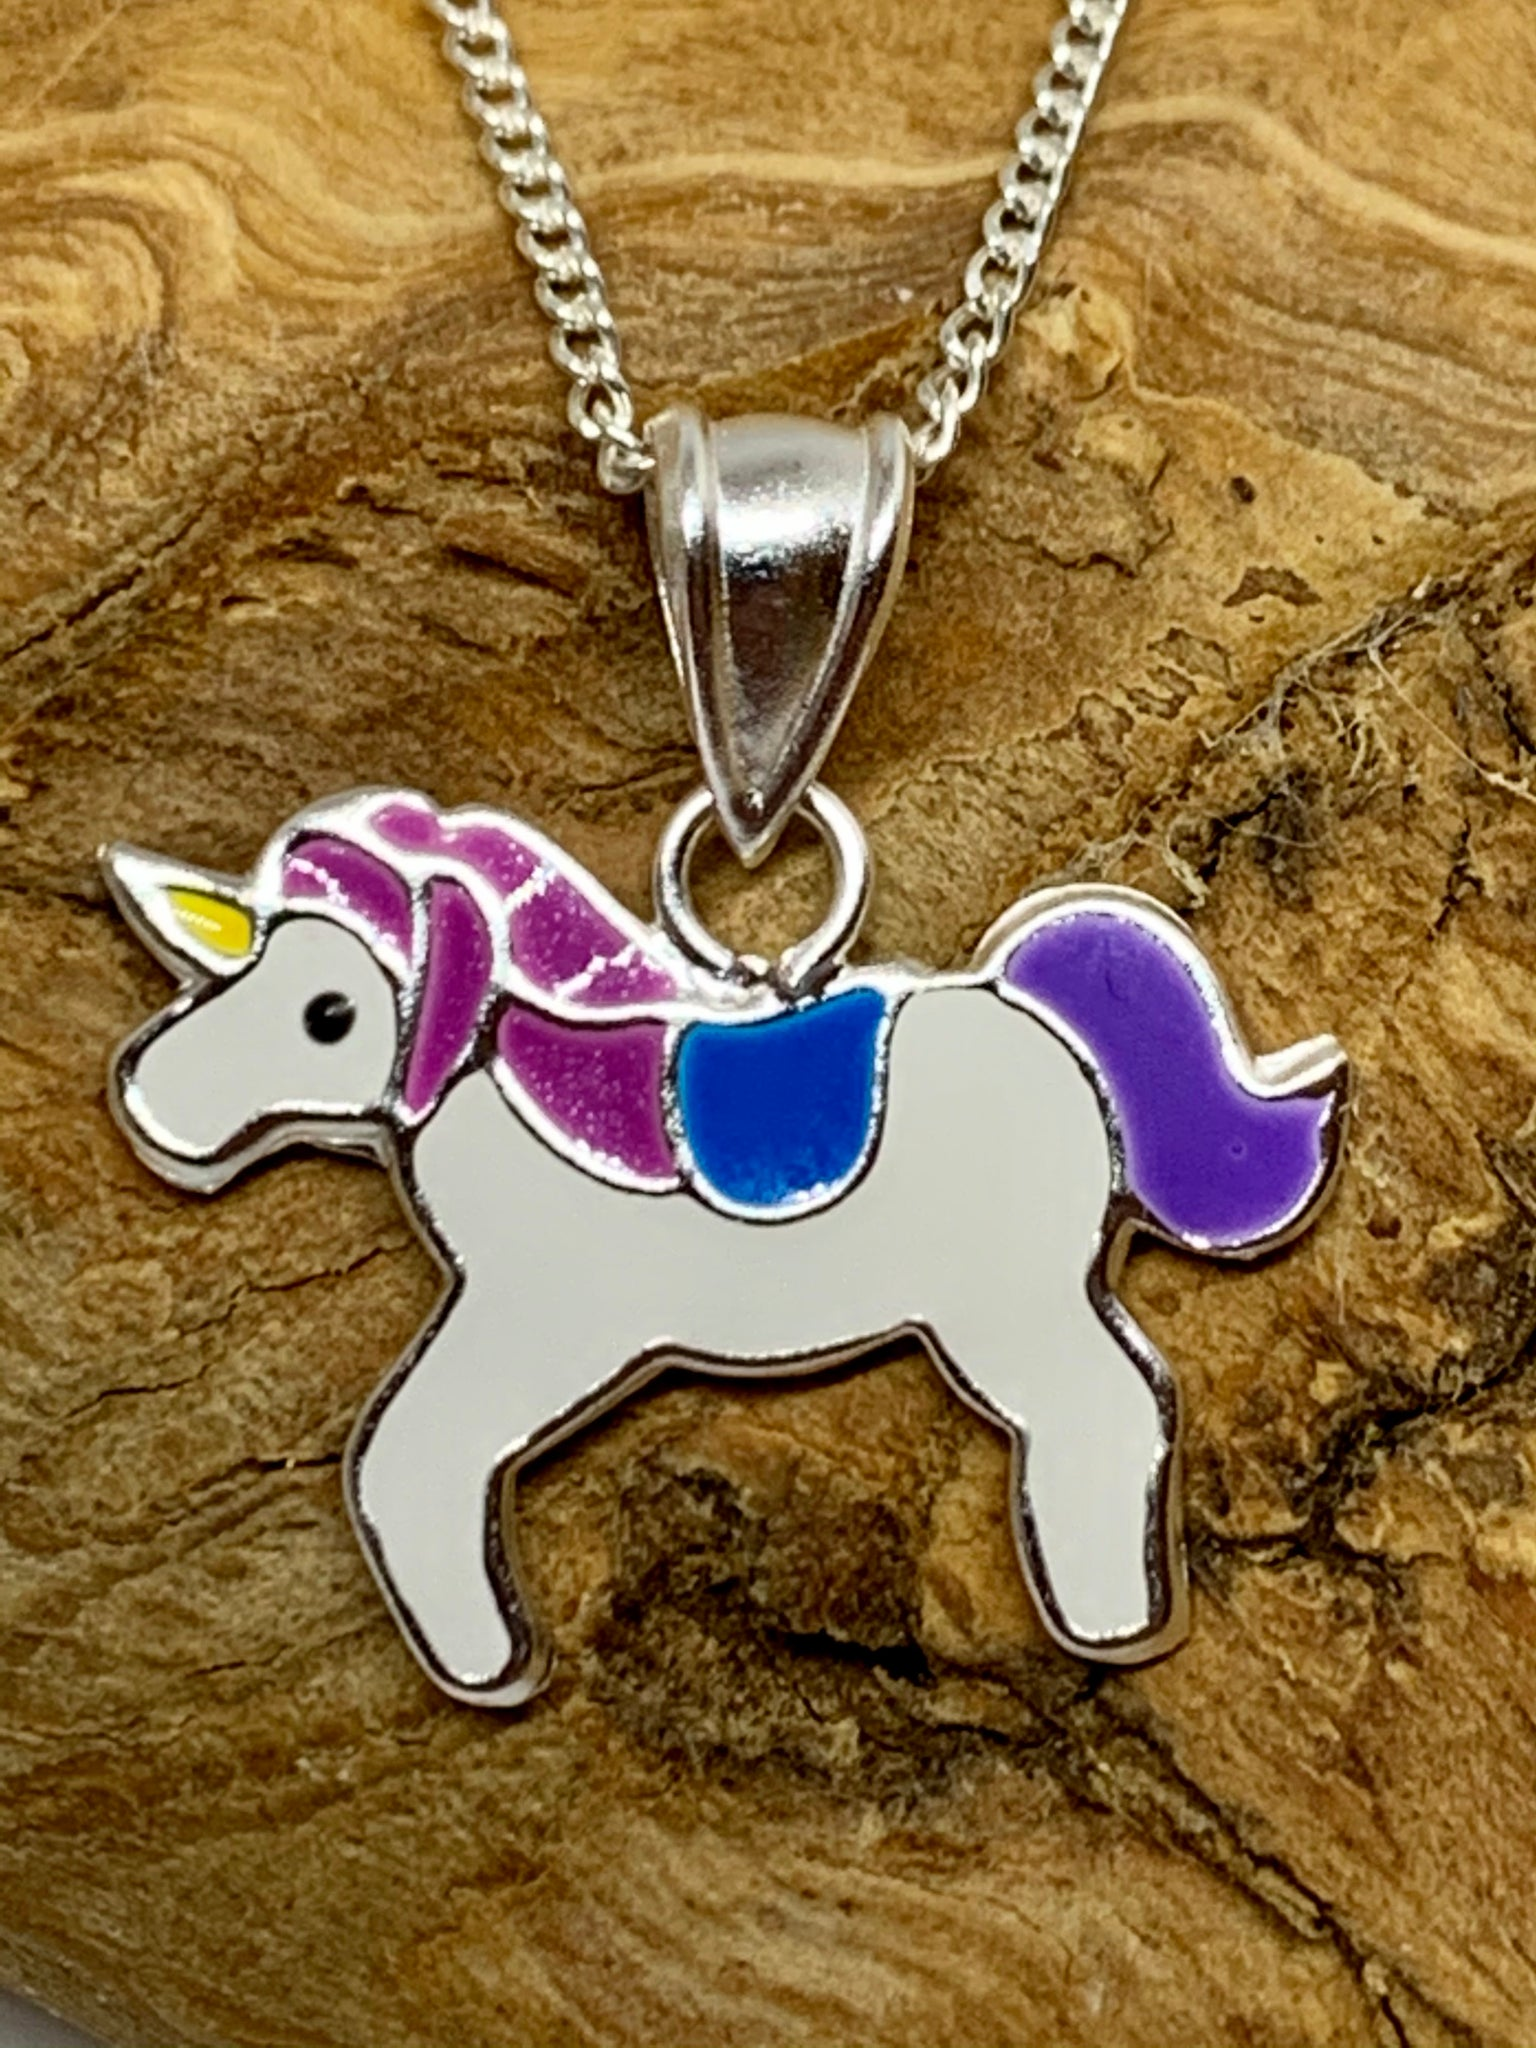 Unicorn necklace from Pixi Daisy